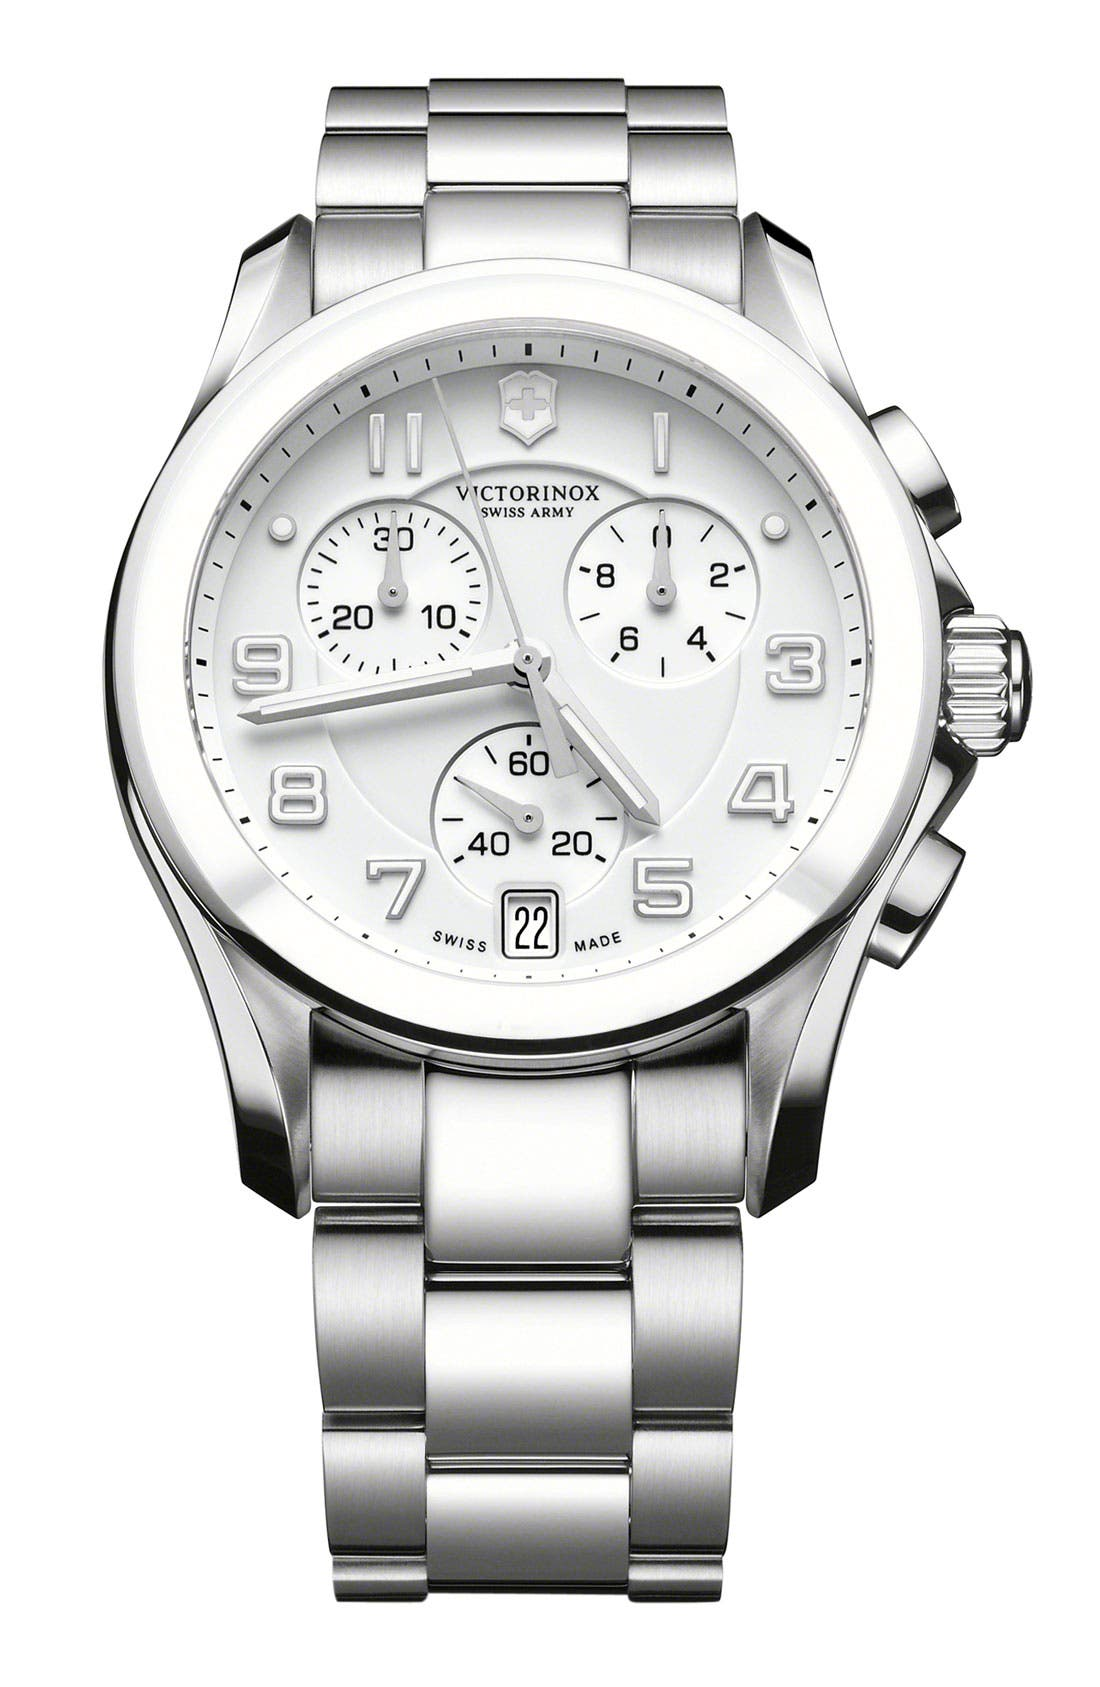 Main Image - Victorinox Swiss Army® 'Chrono Classic' Watch with Ceramic Bezel